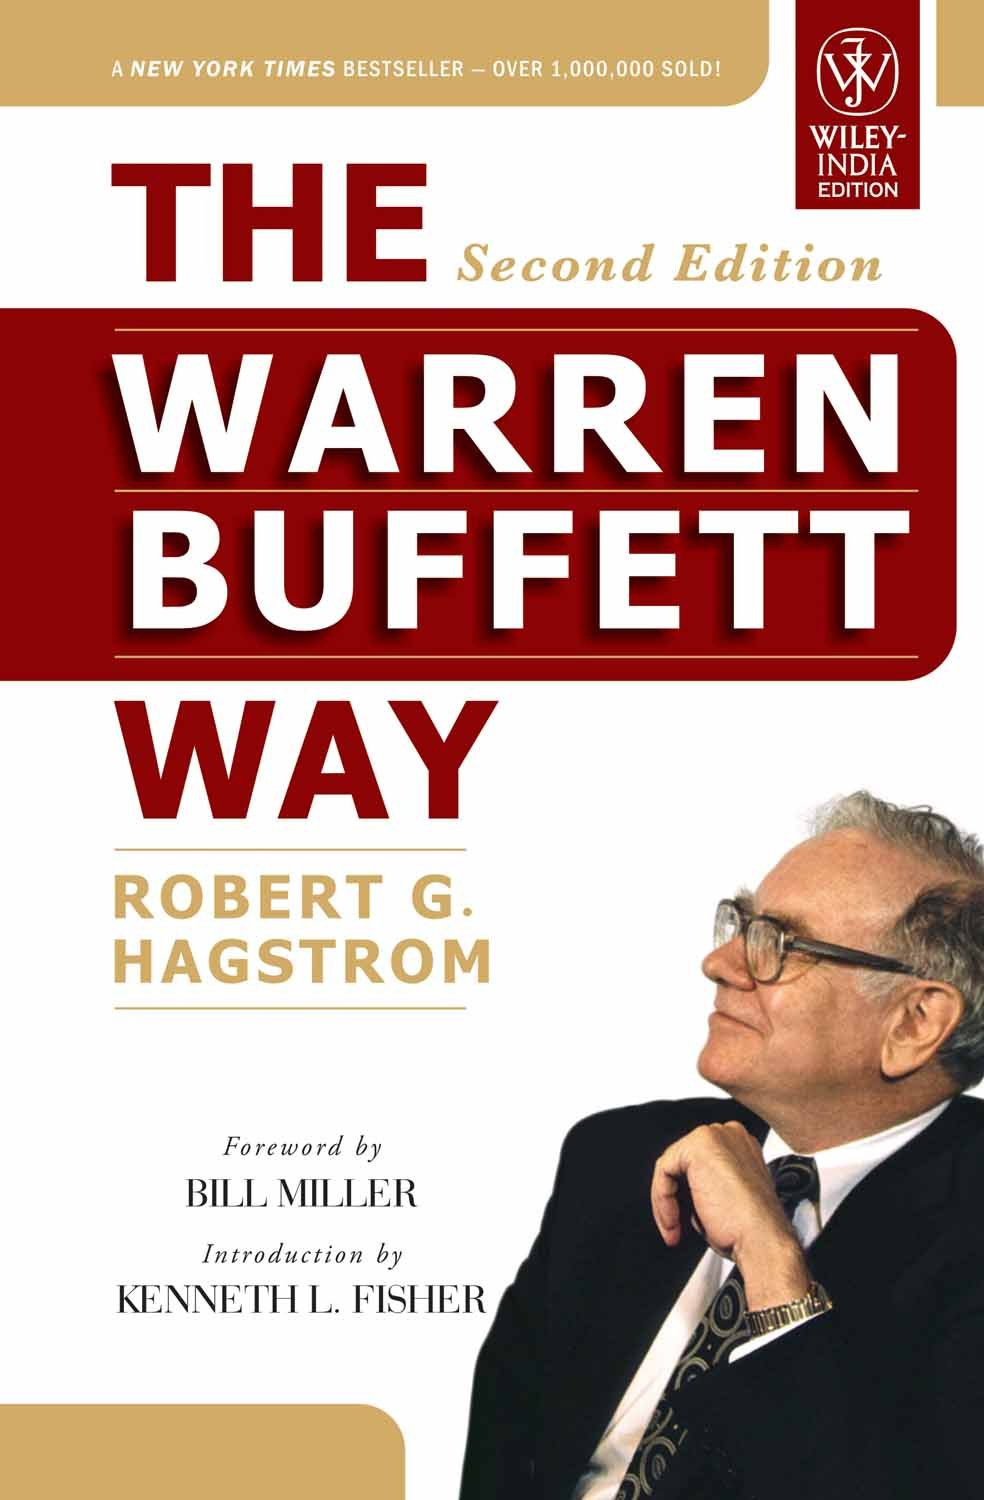 Robert G. Hagstrom - The Warren Buffett Way: Investment Strategies of the World's Greatest Investor